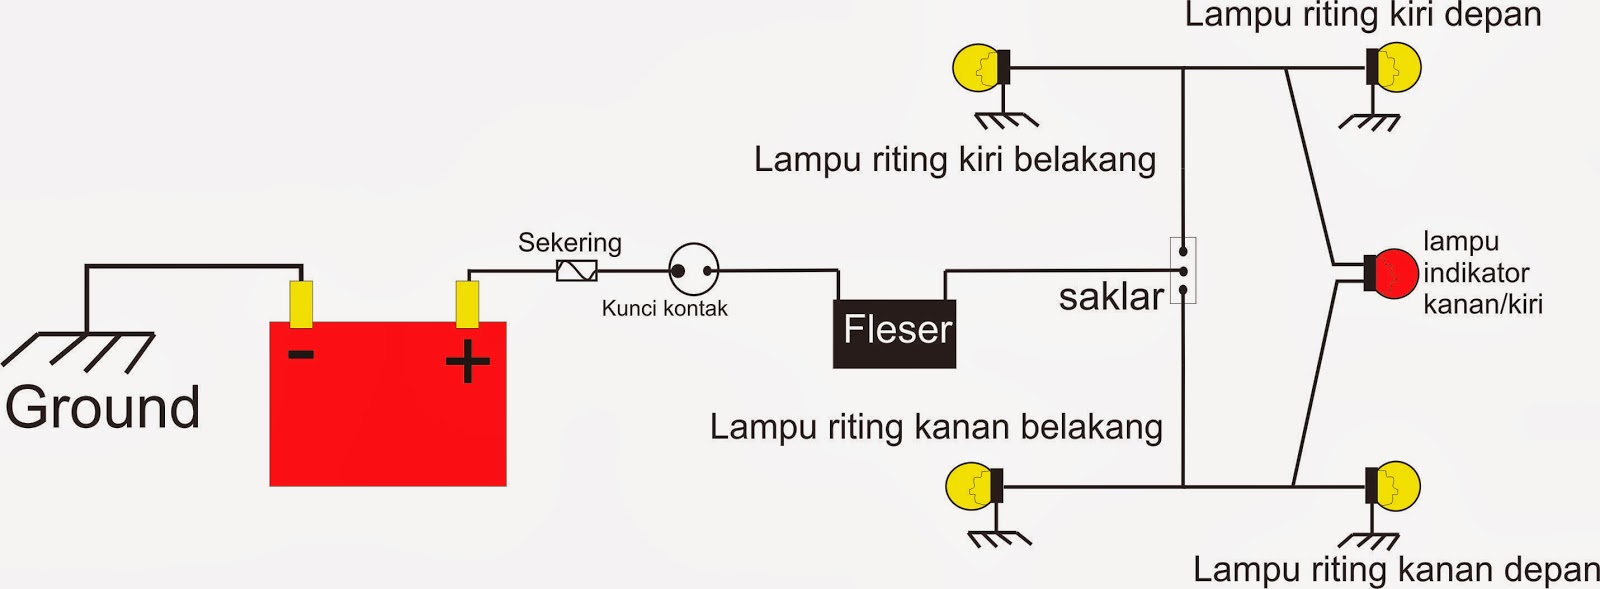 Wiring diagram lampu sen electrical drawing wiring diagram download koleksi 93 gambar wering diagram sistem penerangan sepeda rh motorjepit blogspot com swarovskicordoba Images